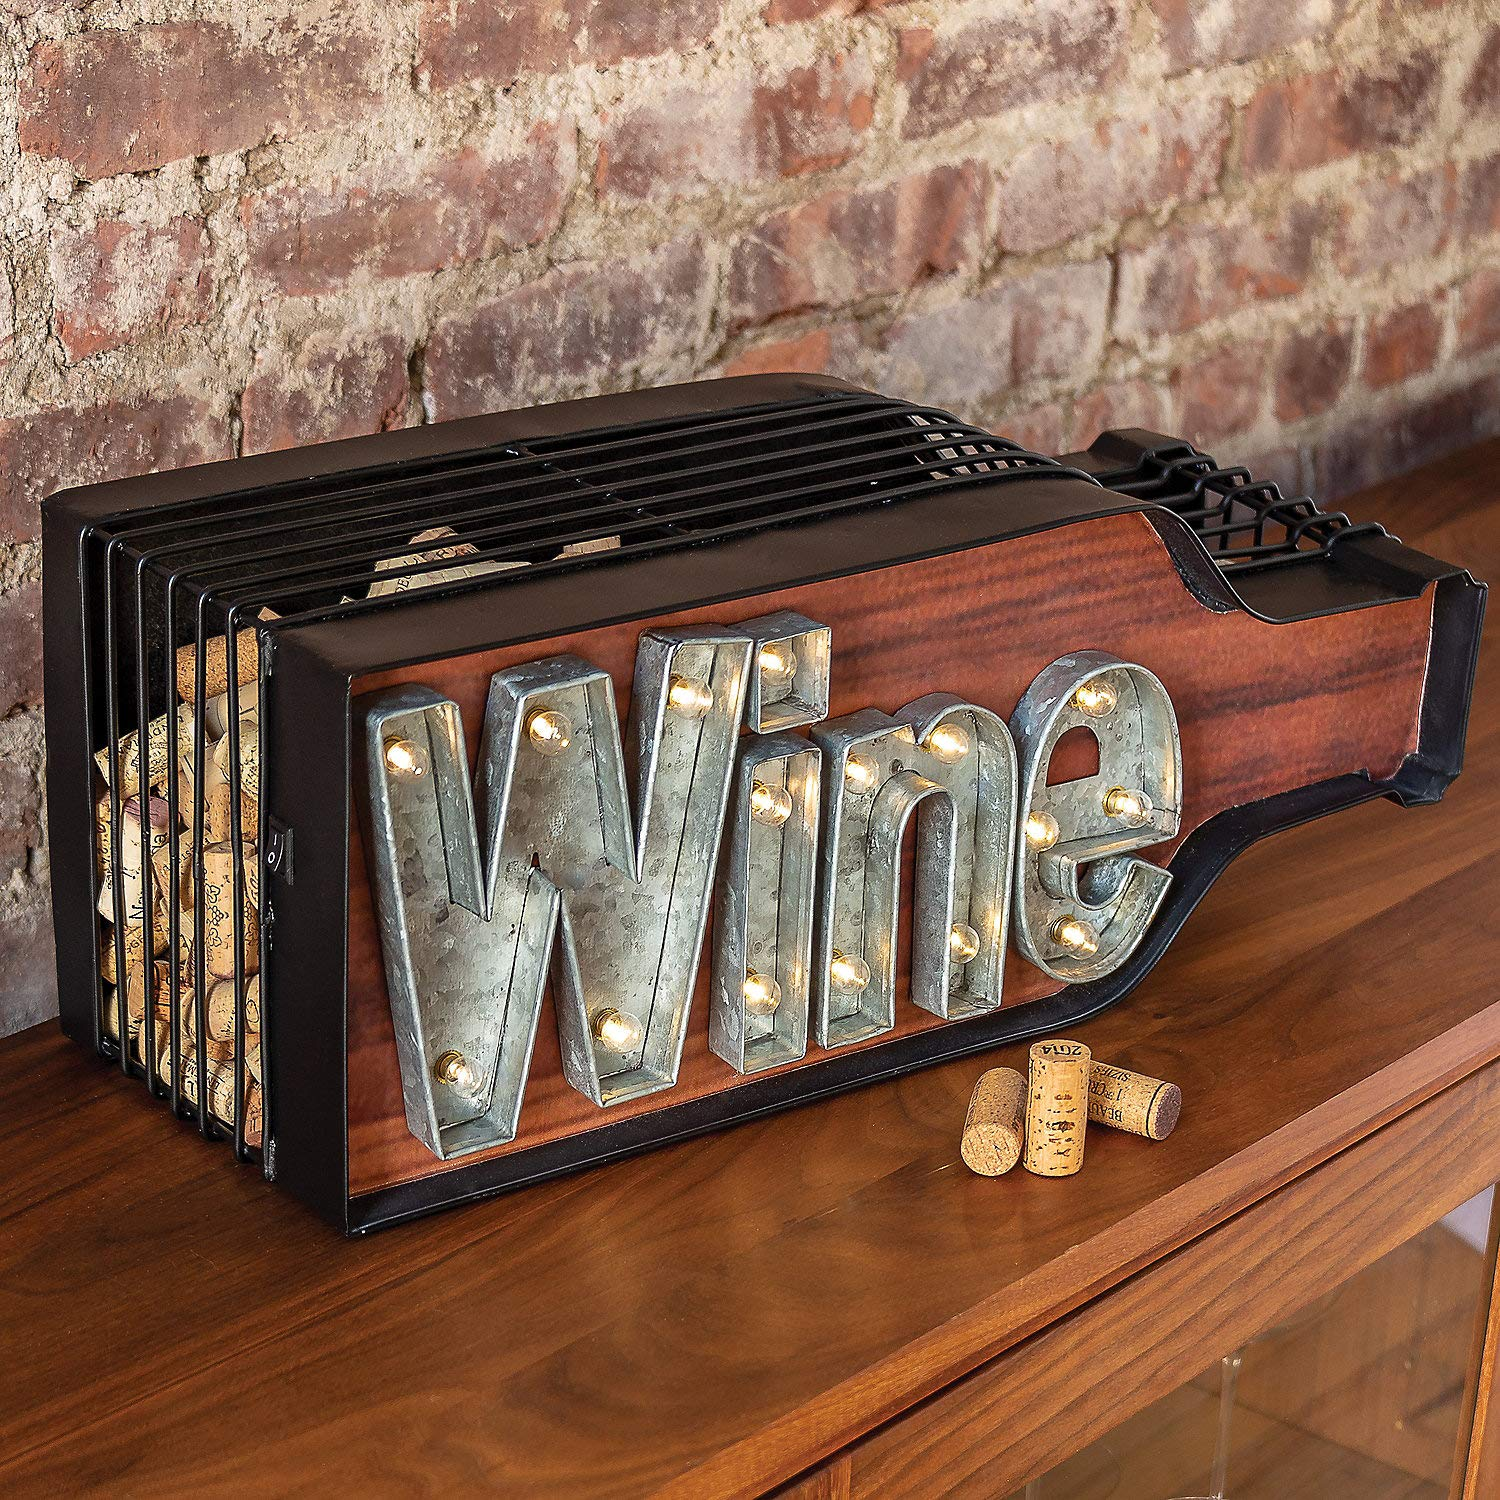 Lighted Wine Bottle Cork Catcher by Wine Enthusiast (Image #1)